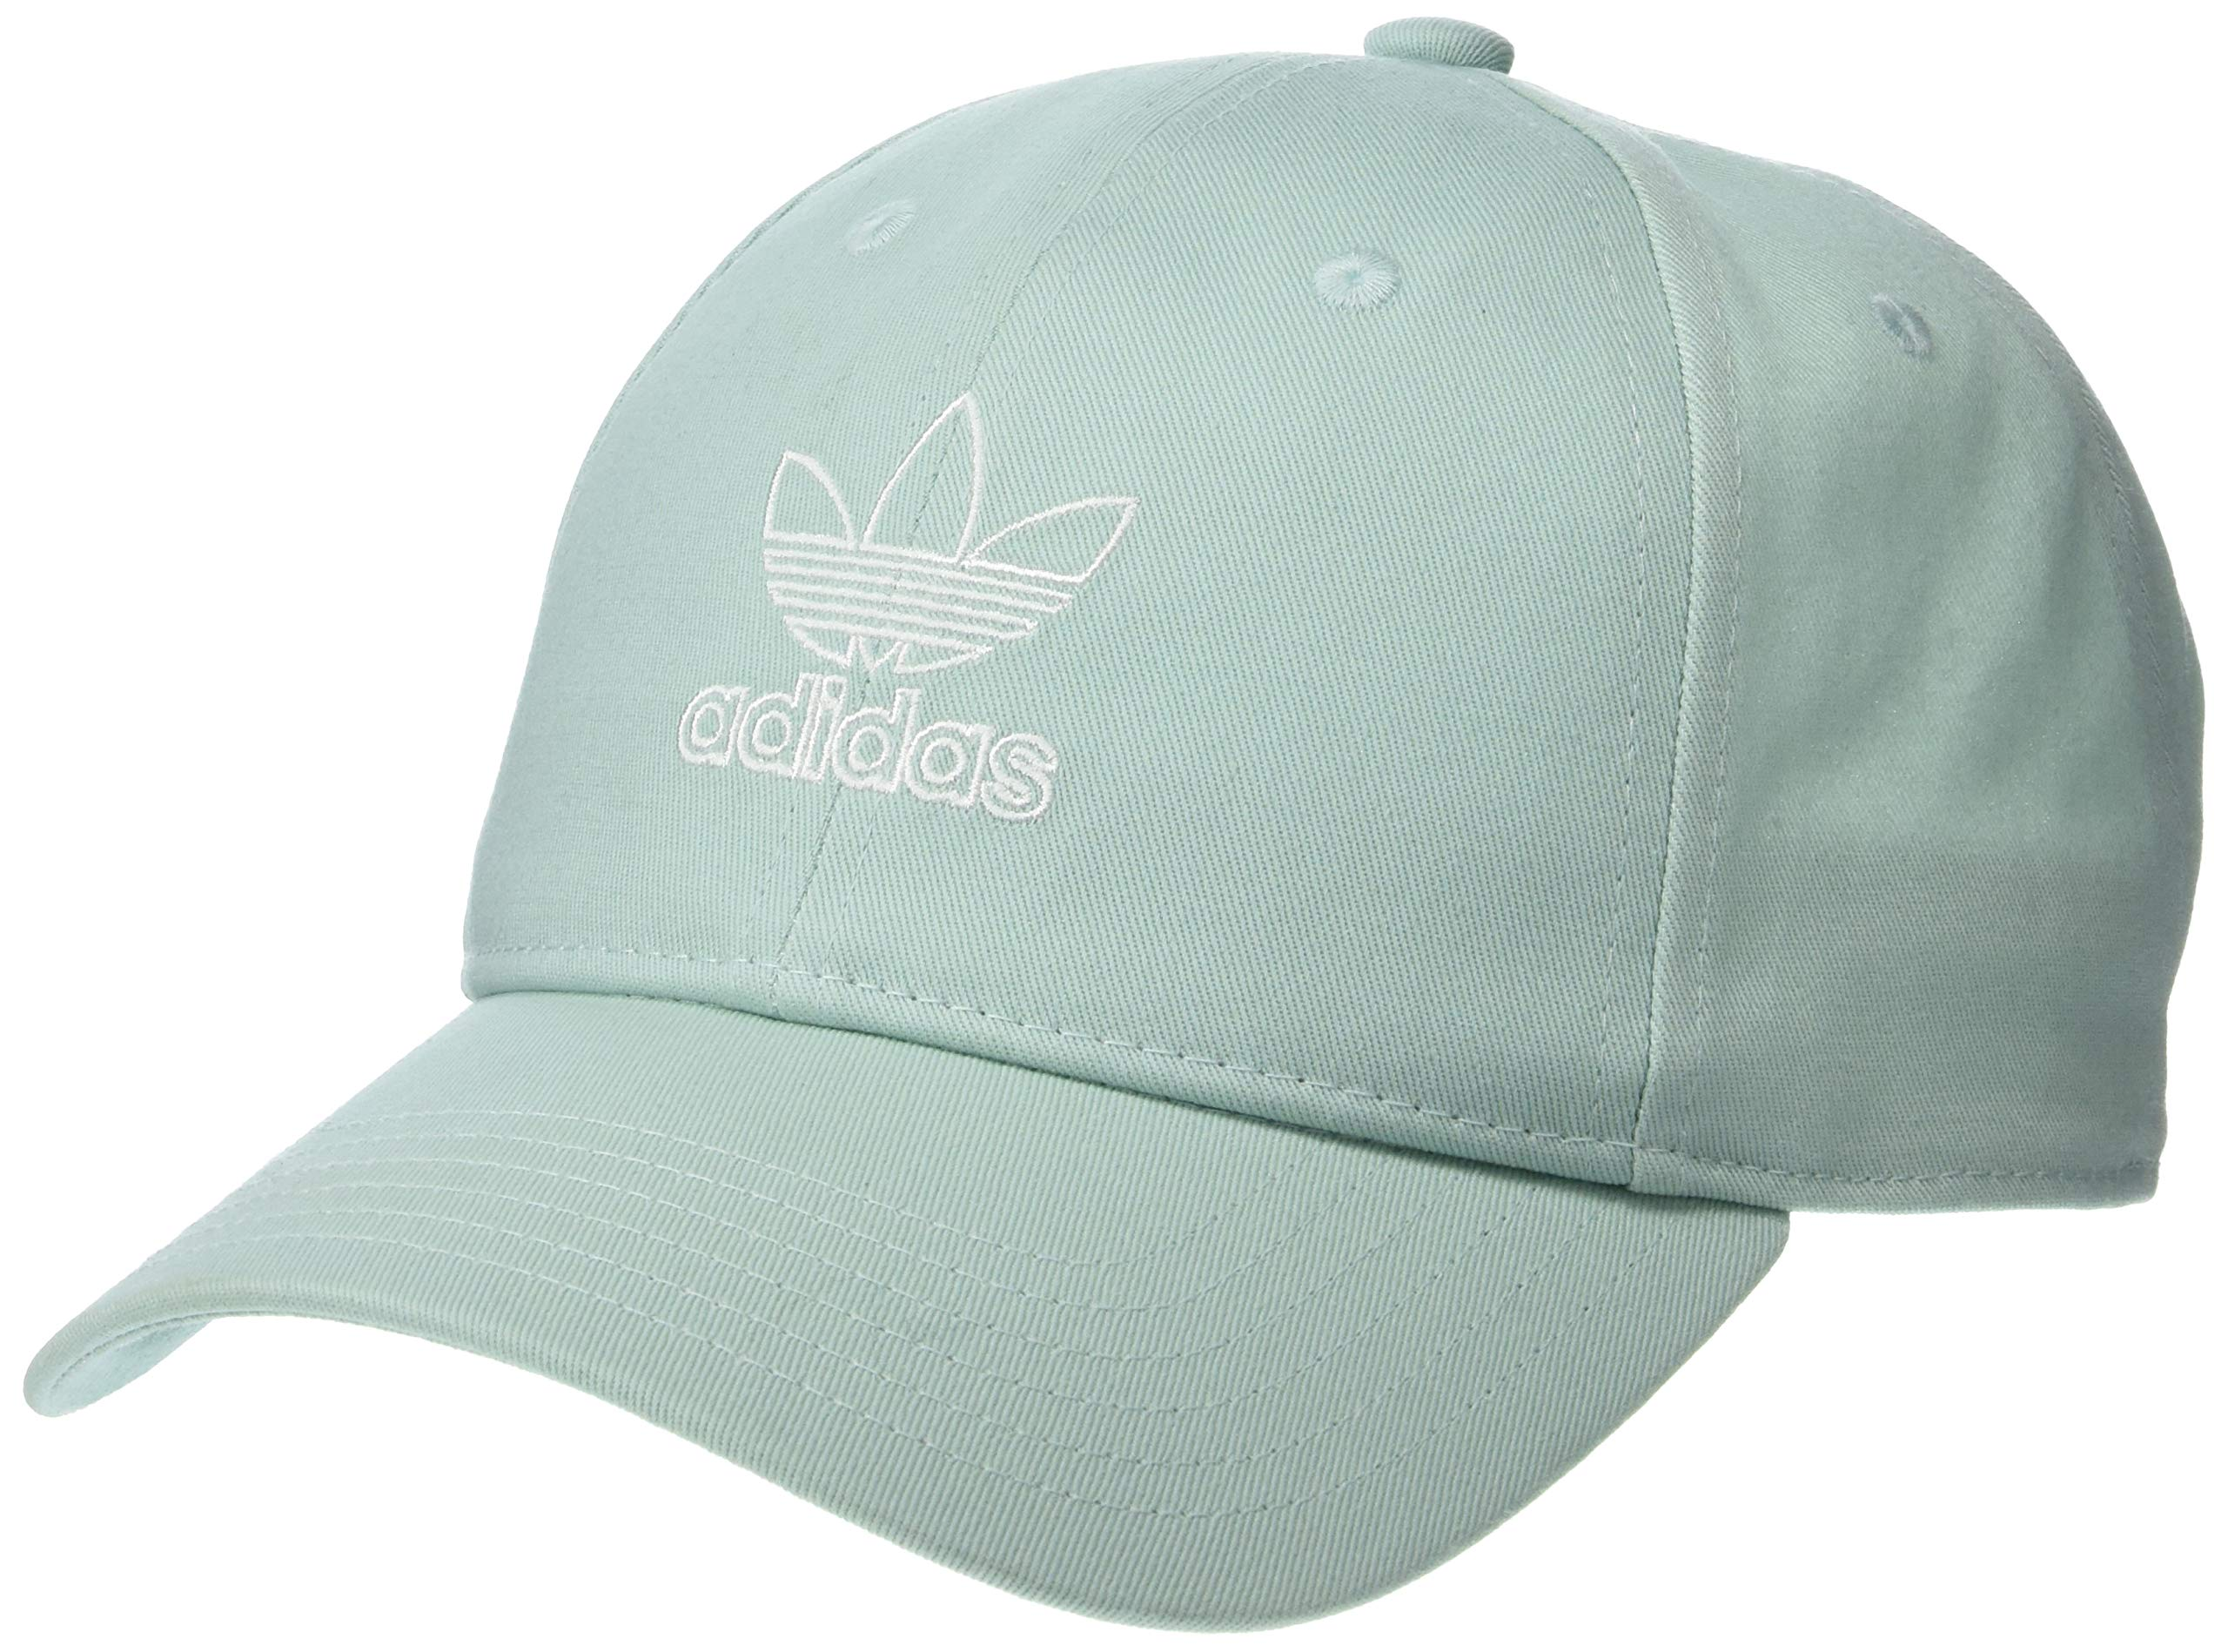 adidas Originals Women's Relaxed Outline Cap, Ash Green/White, ONE SIZE by adidas